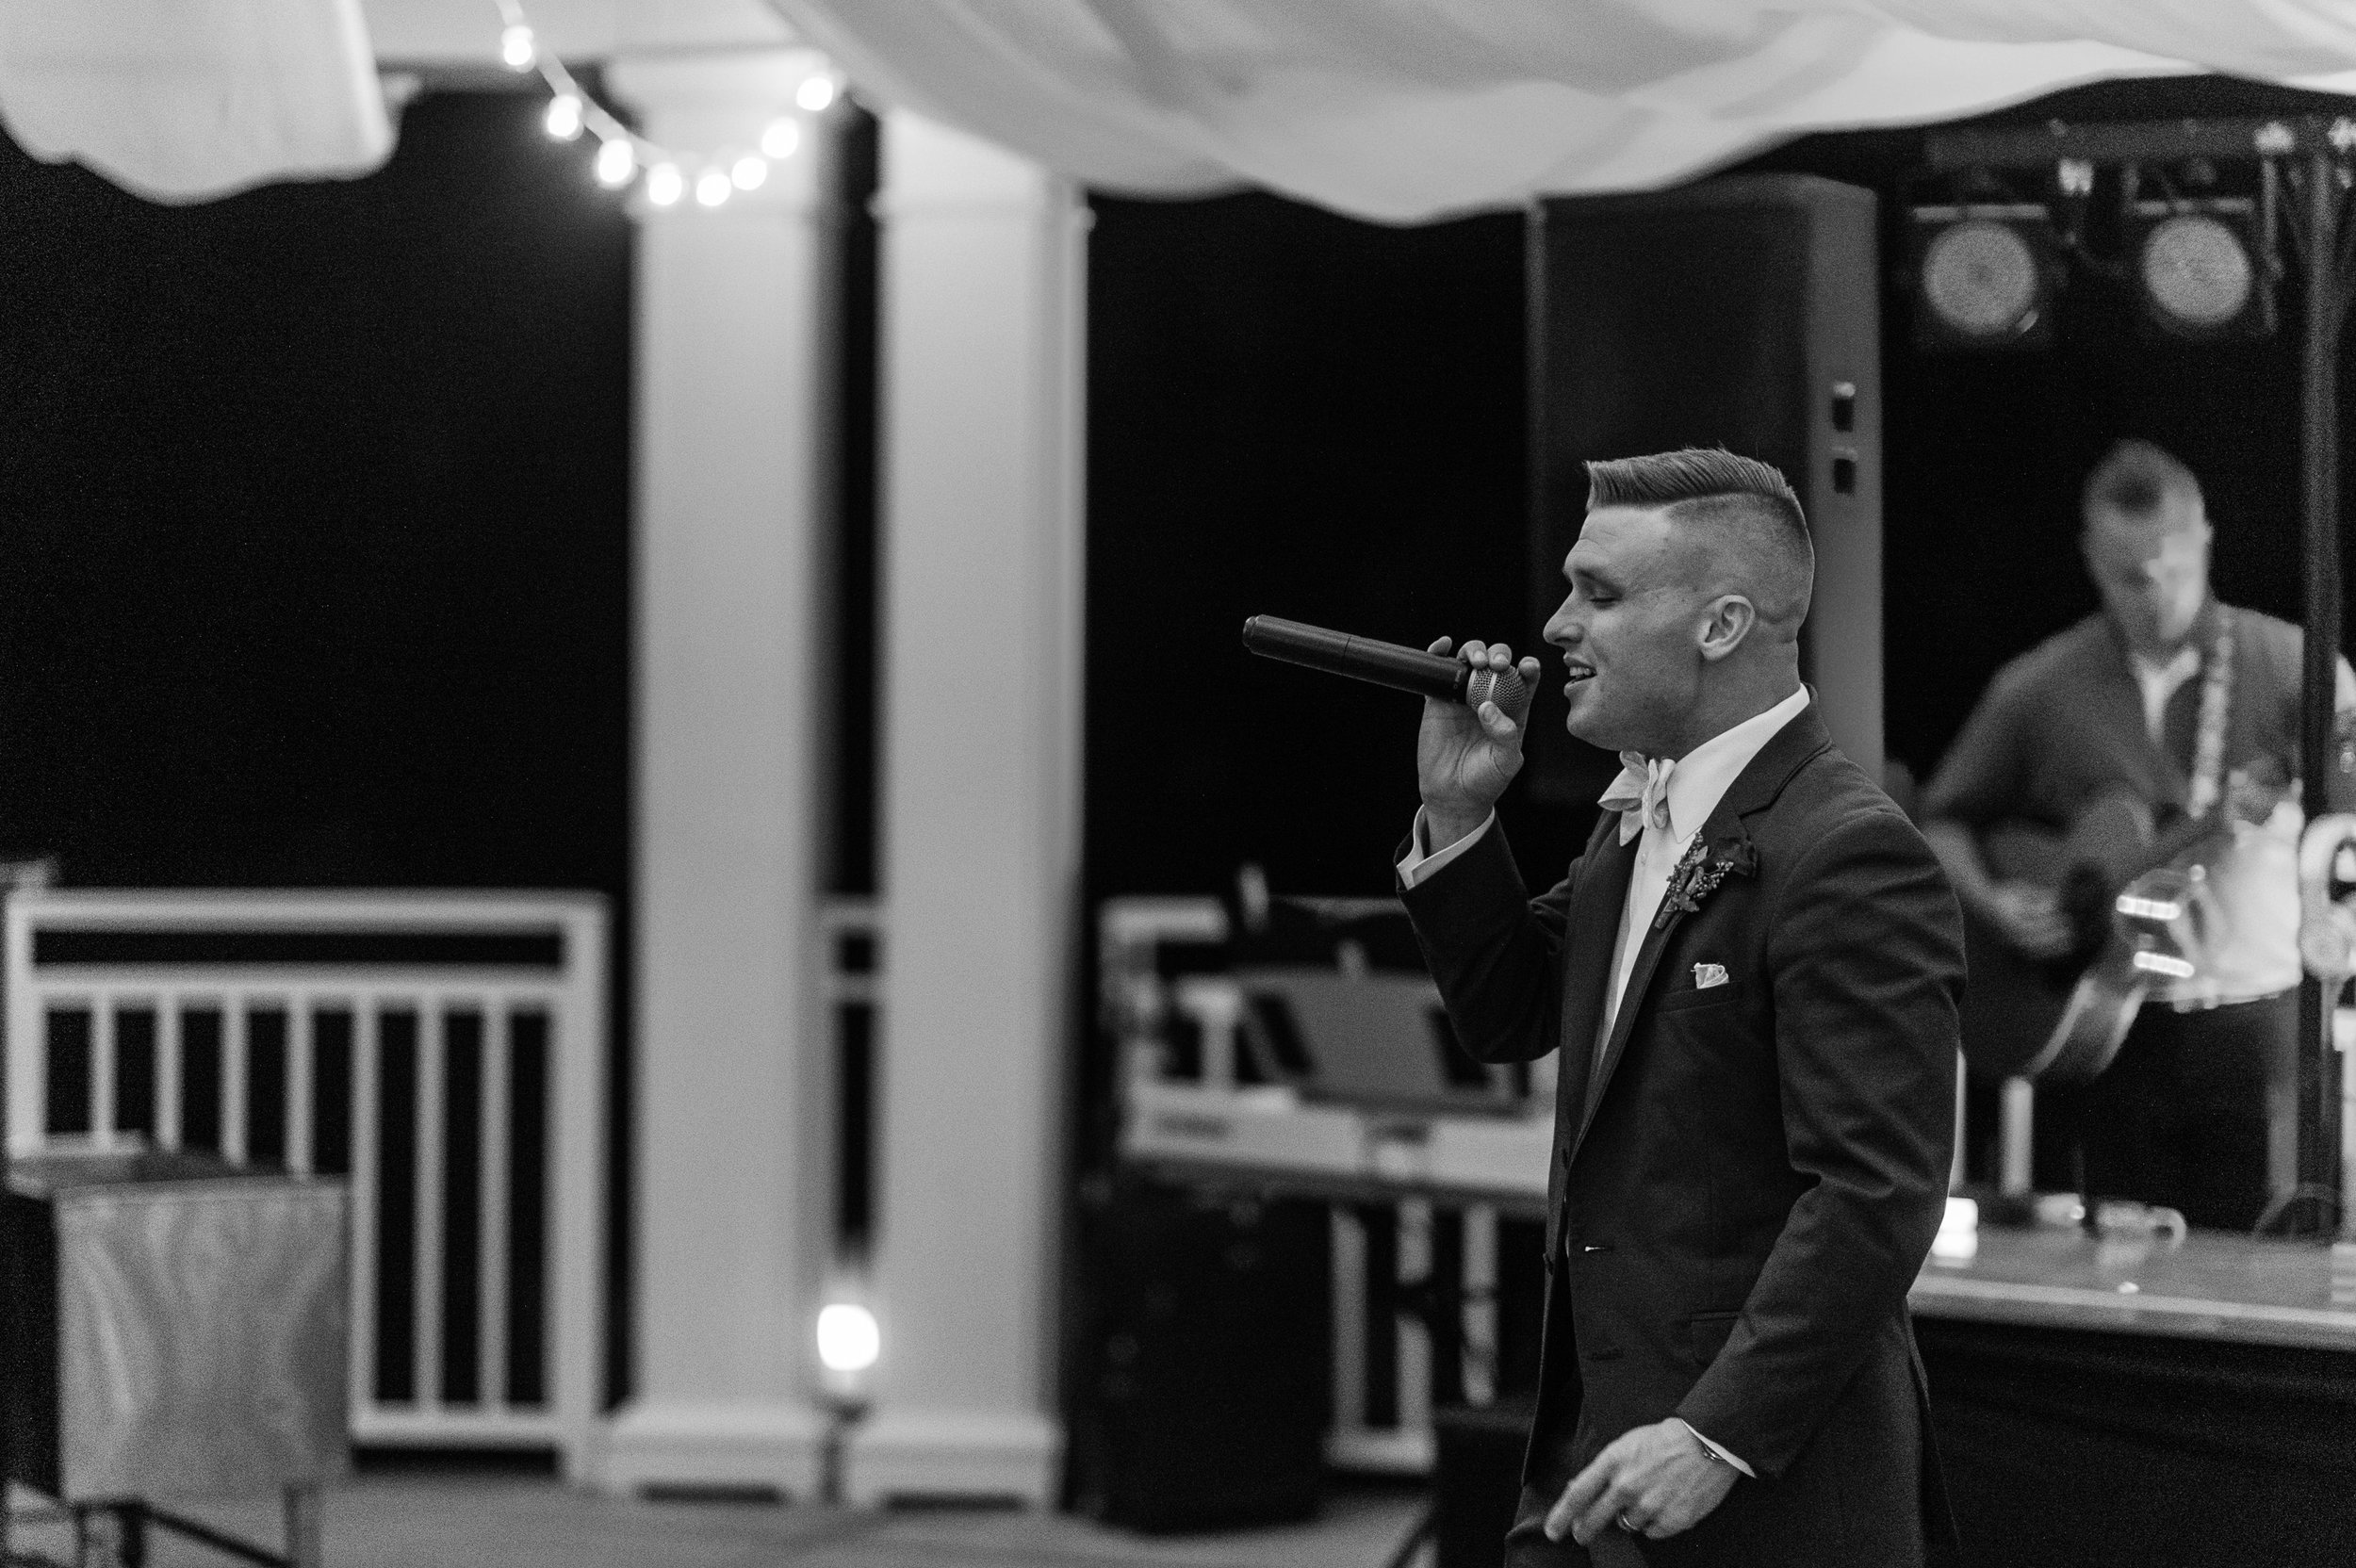 Sean singing for his beautiful bride at their wedding | Iowa Wed